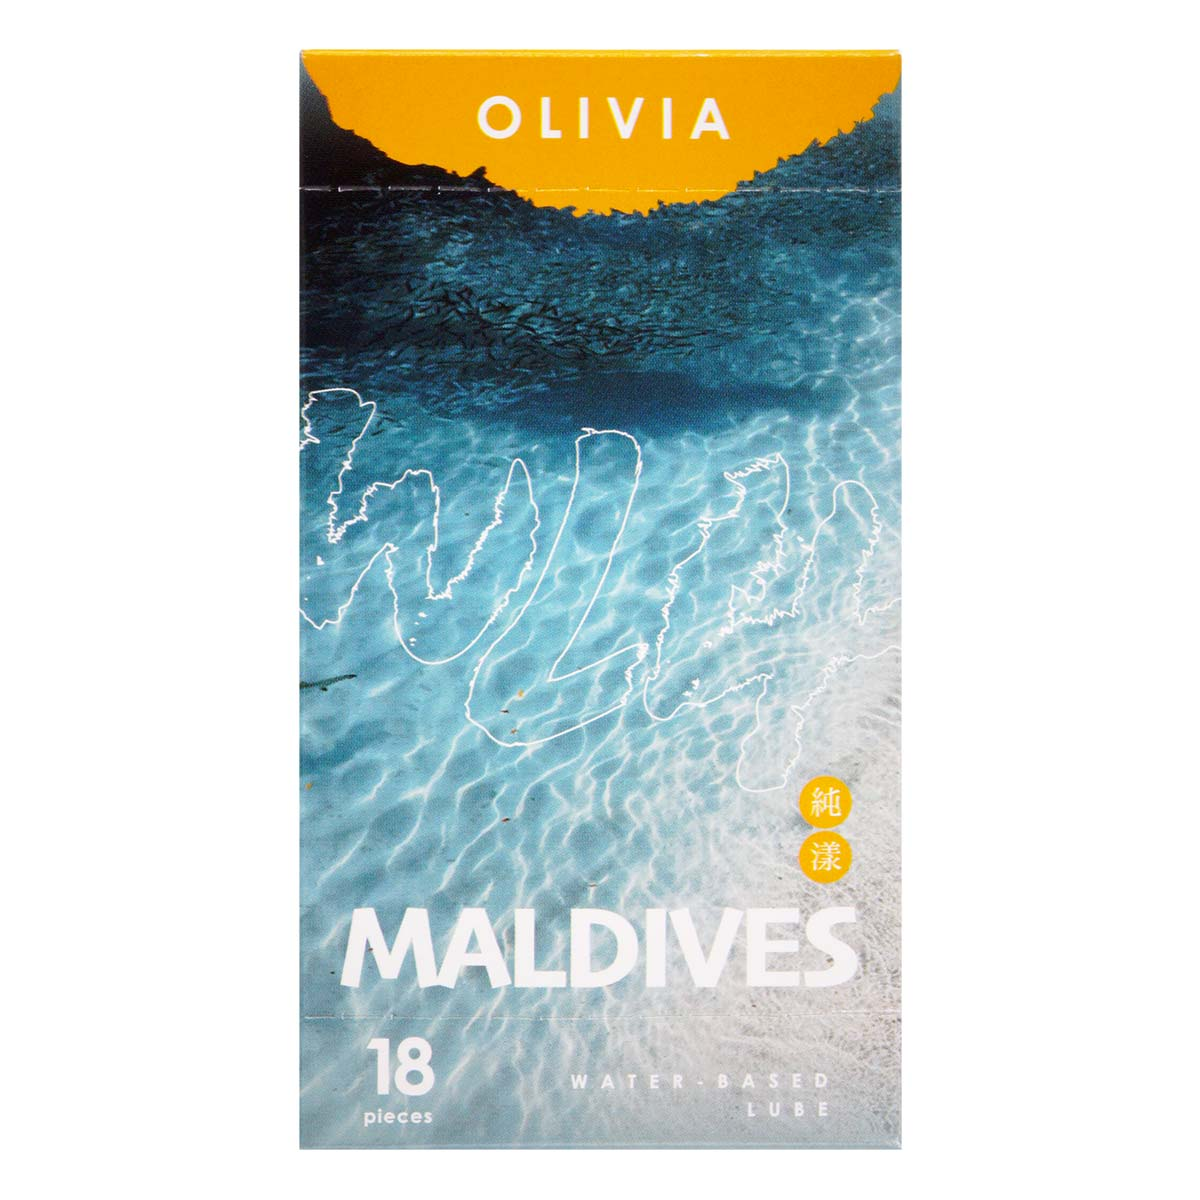 Olivia Maldives Hydro 4g (sachet) 18 pieces Water-based Lubricant